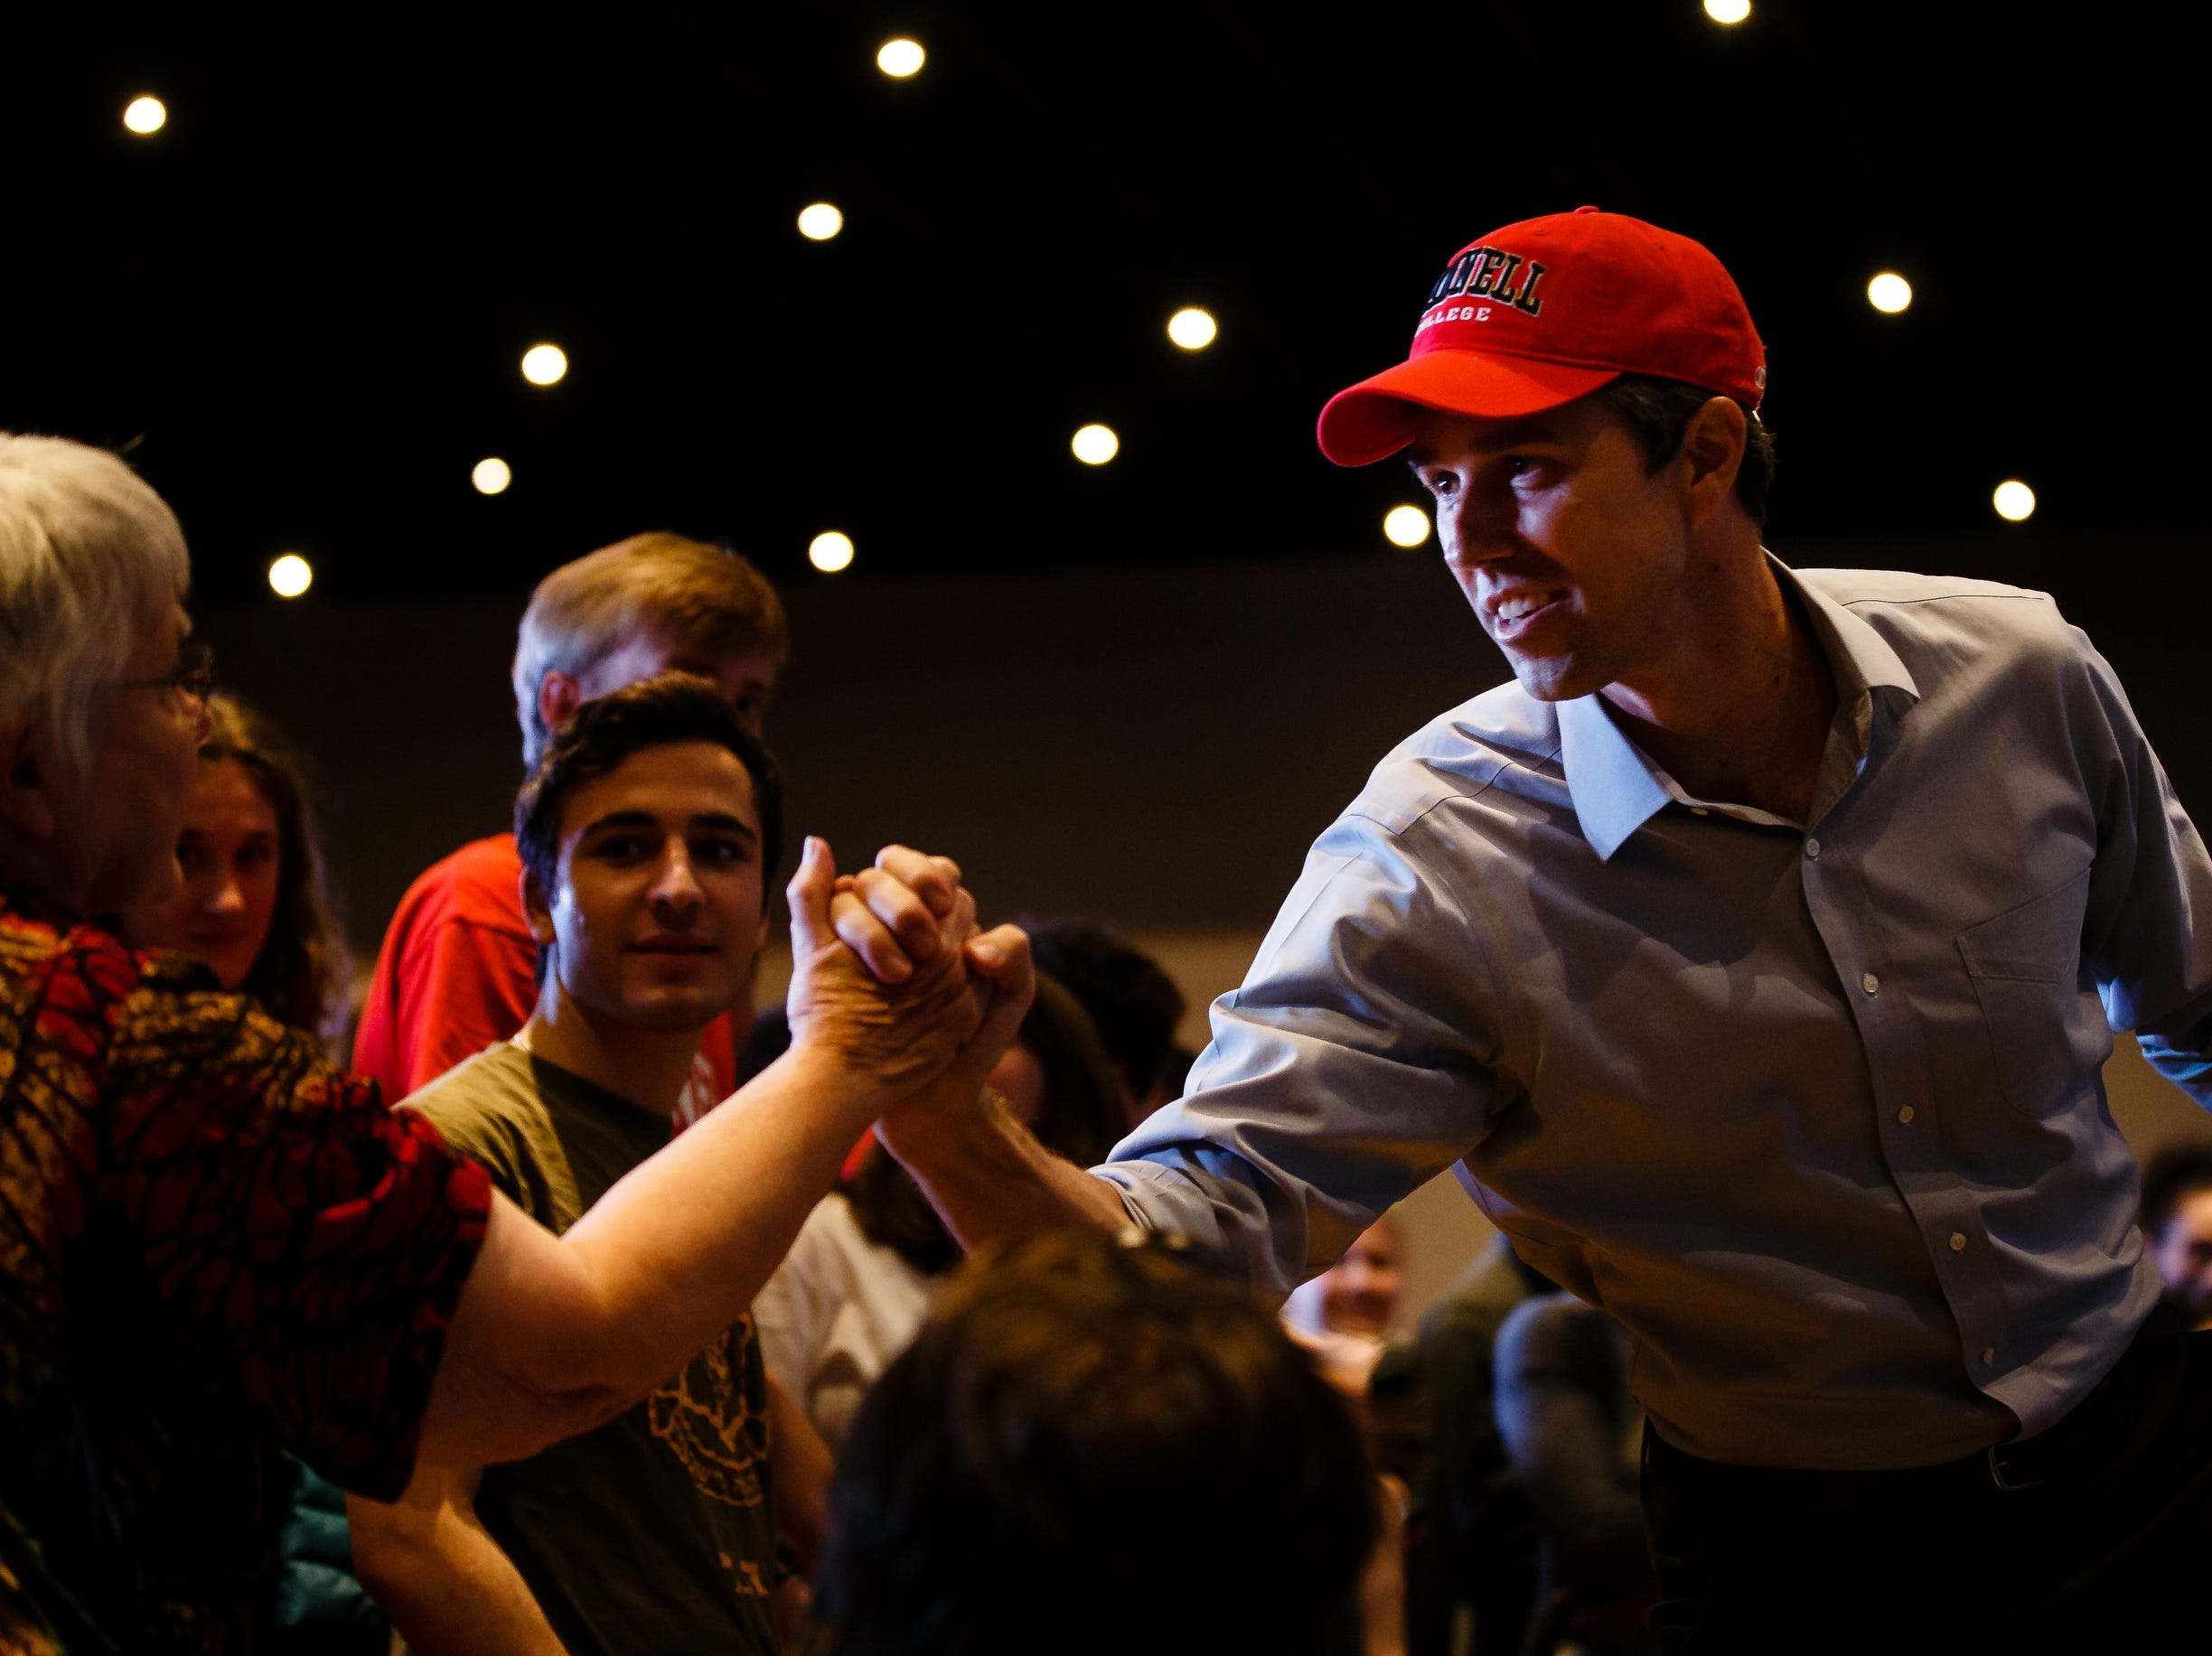 2020 Democratic presidential candidate and former Texas Representative Beto O'Rourke greets the crowd at Hotel Grinnell during a swing though Iowa on Friday, April 5, 2019, in Grinnell.